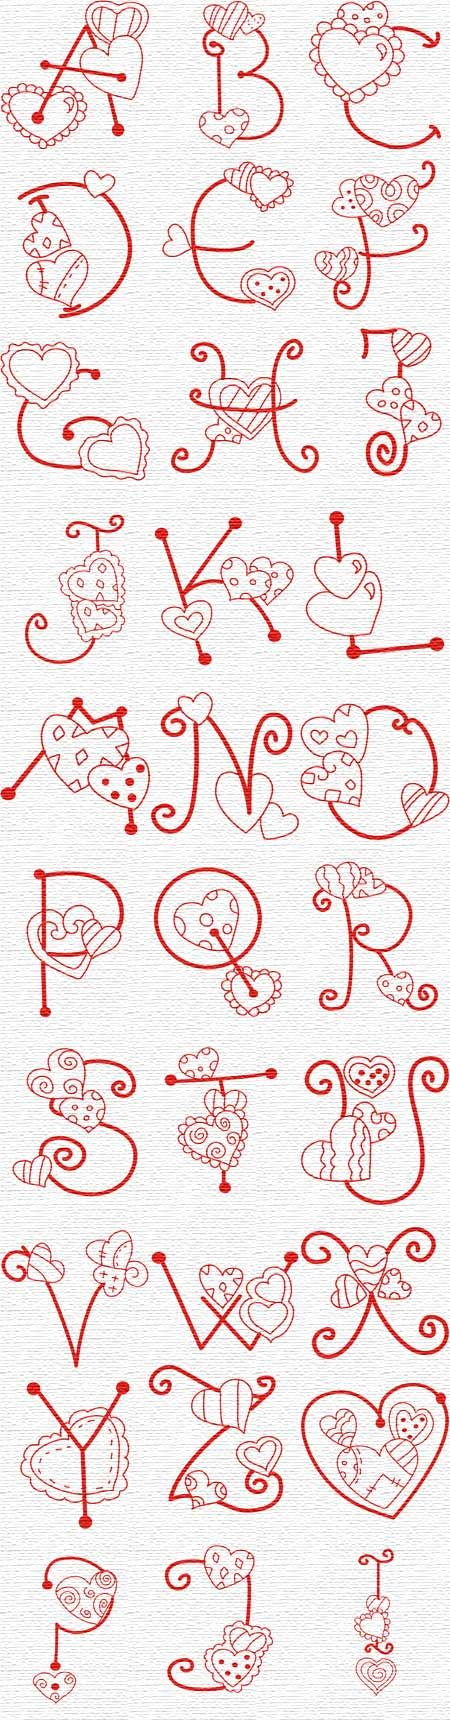 Free Embroidery Designs Sweet Embroidery Designs Index Page Hand